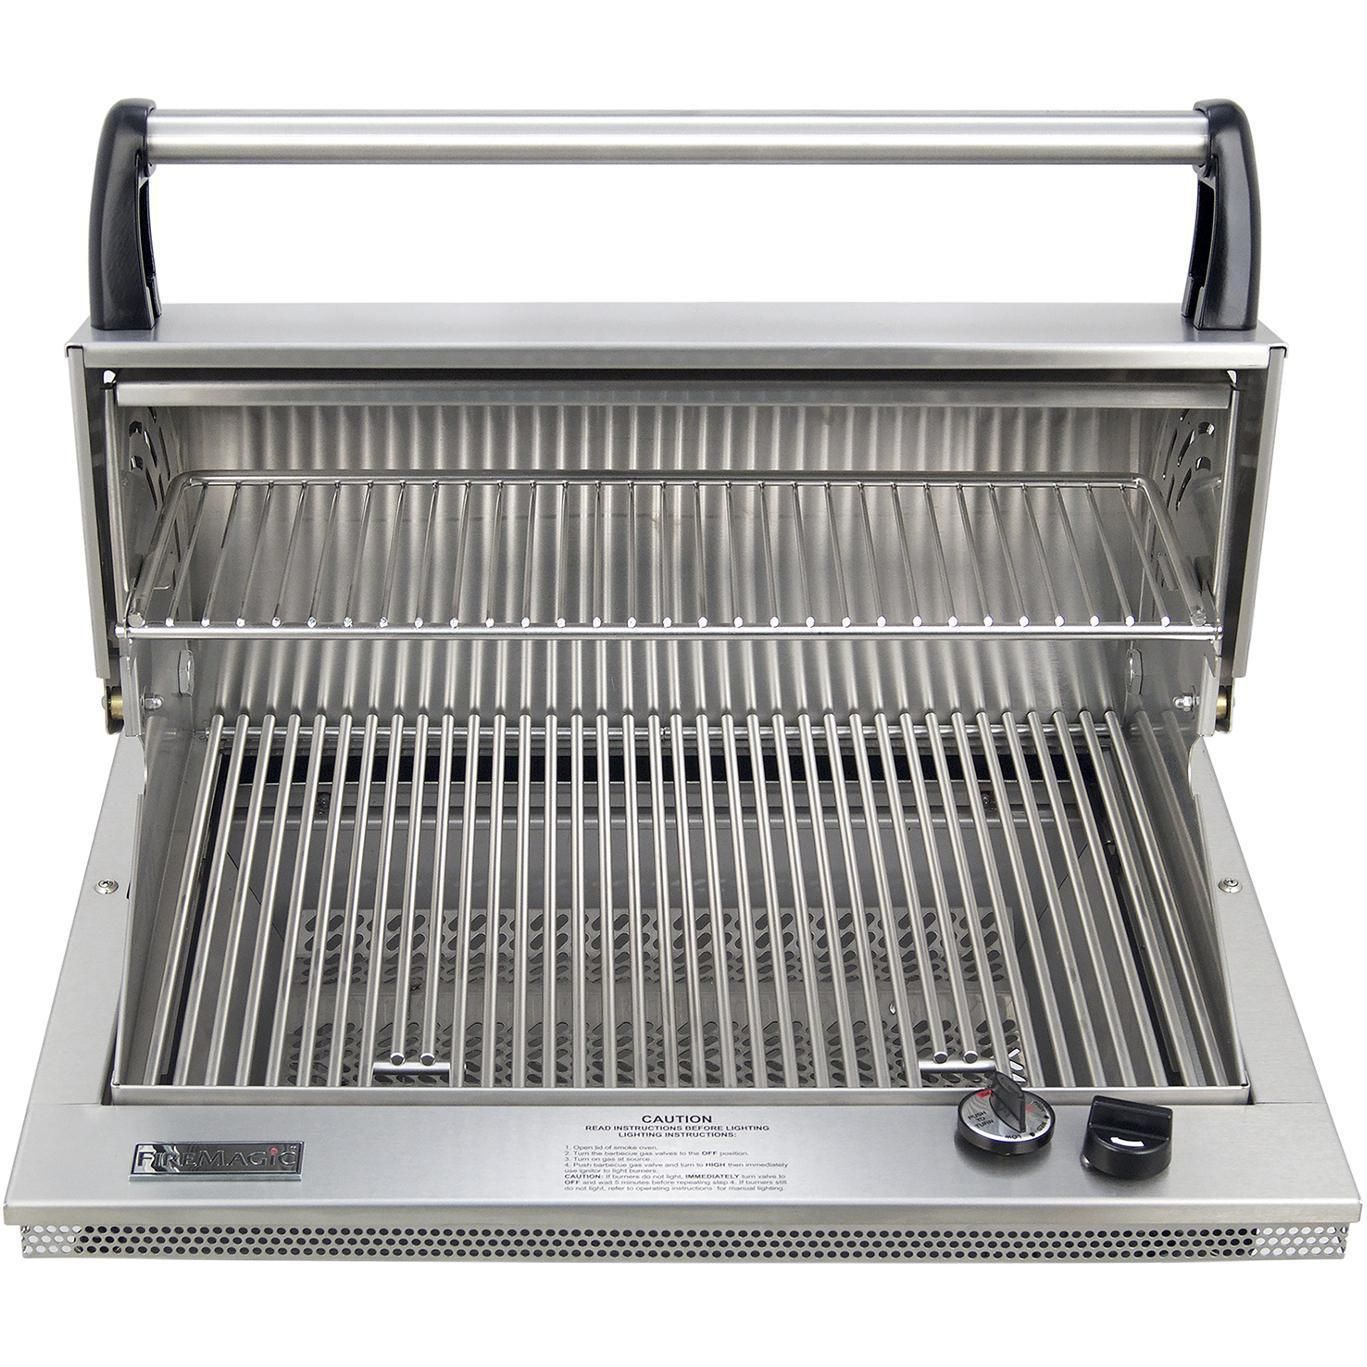 Fire Magic Legacy Deluxe Classic Countertop Natural Gas Grill 31